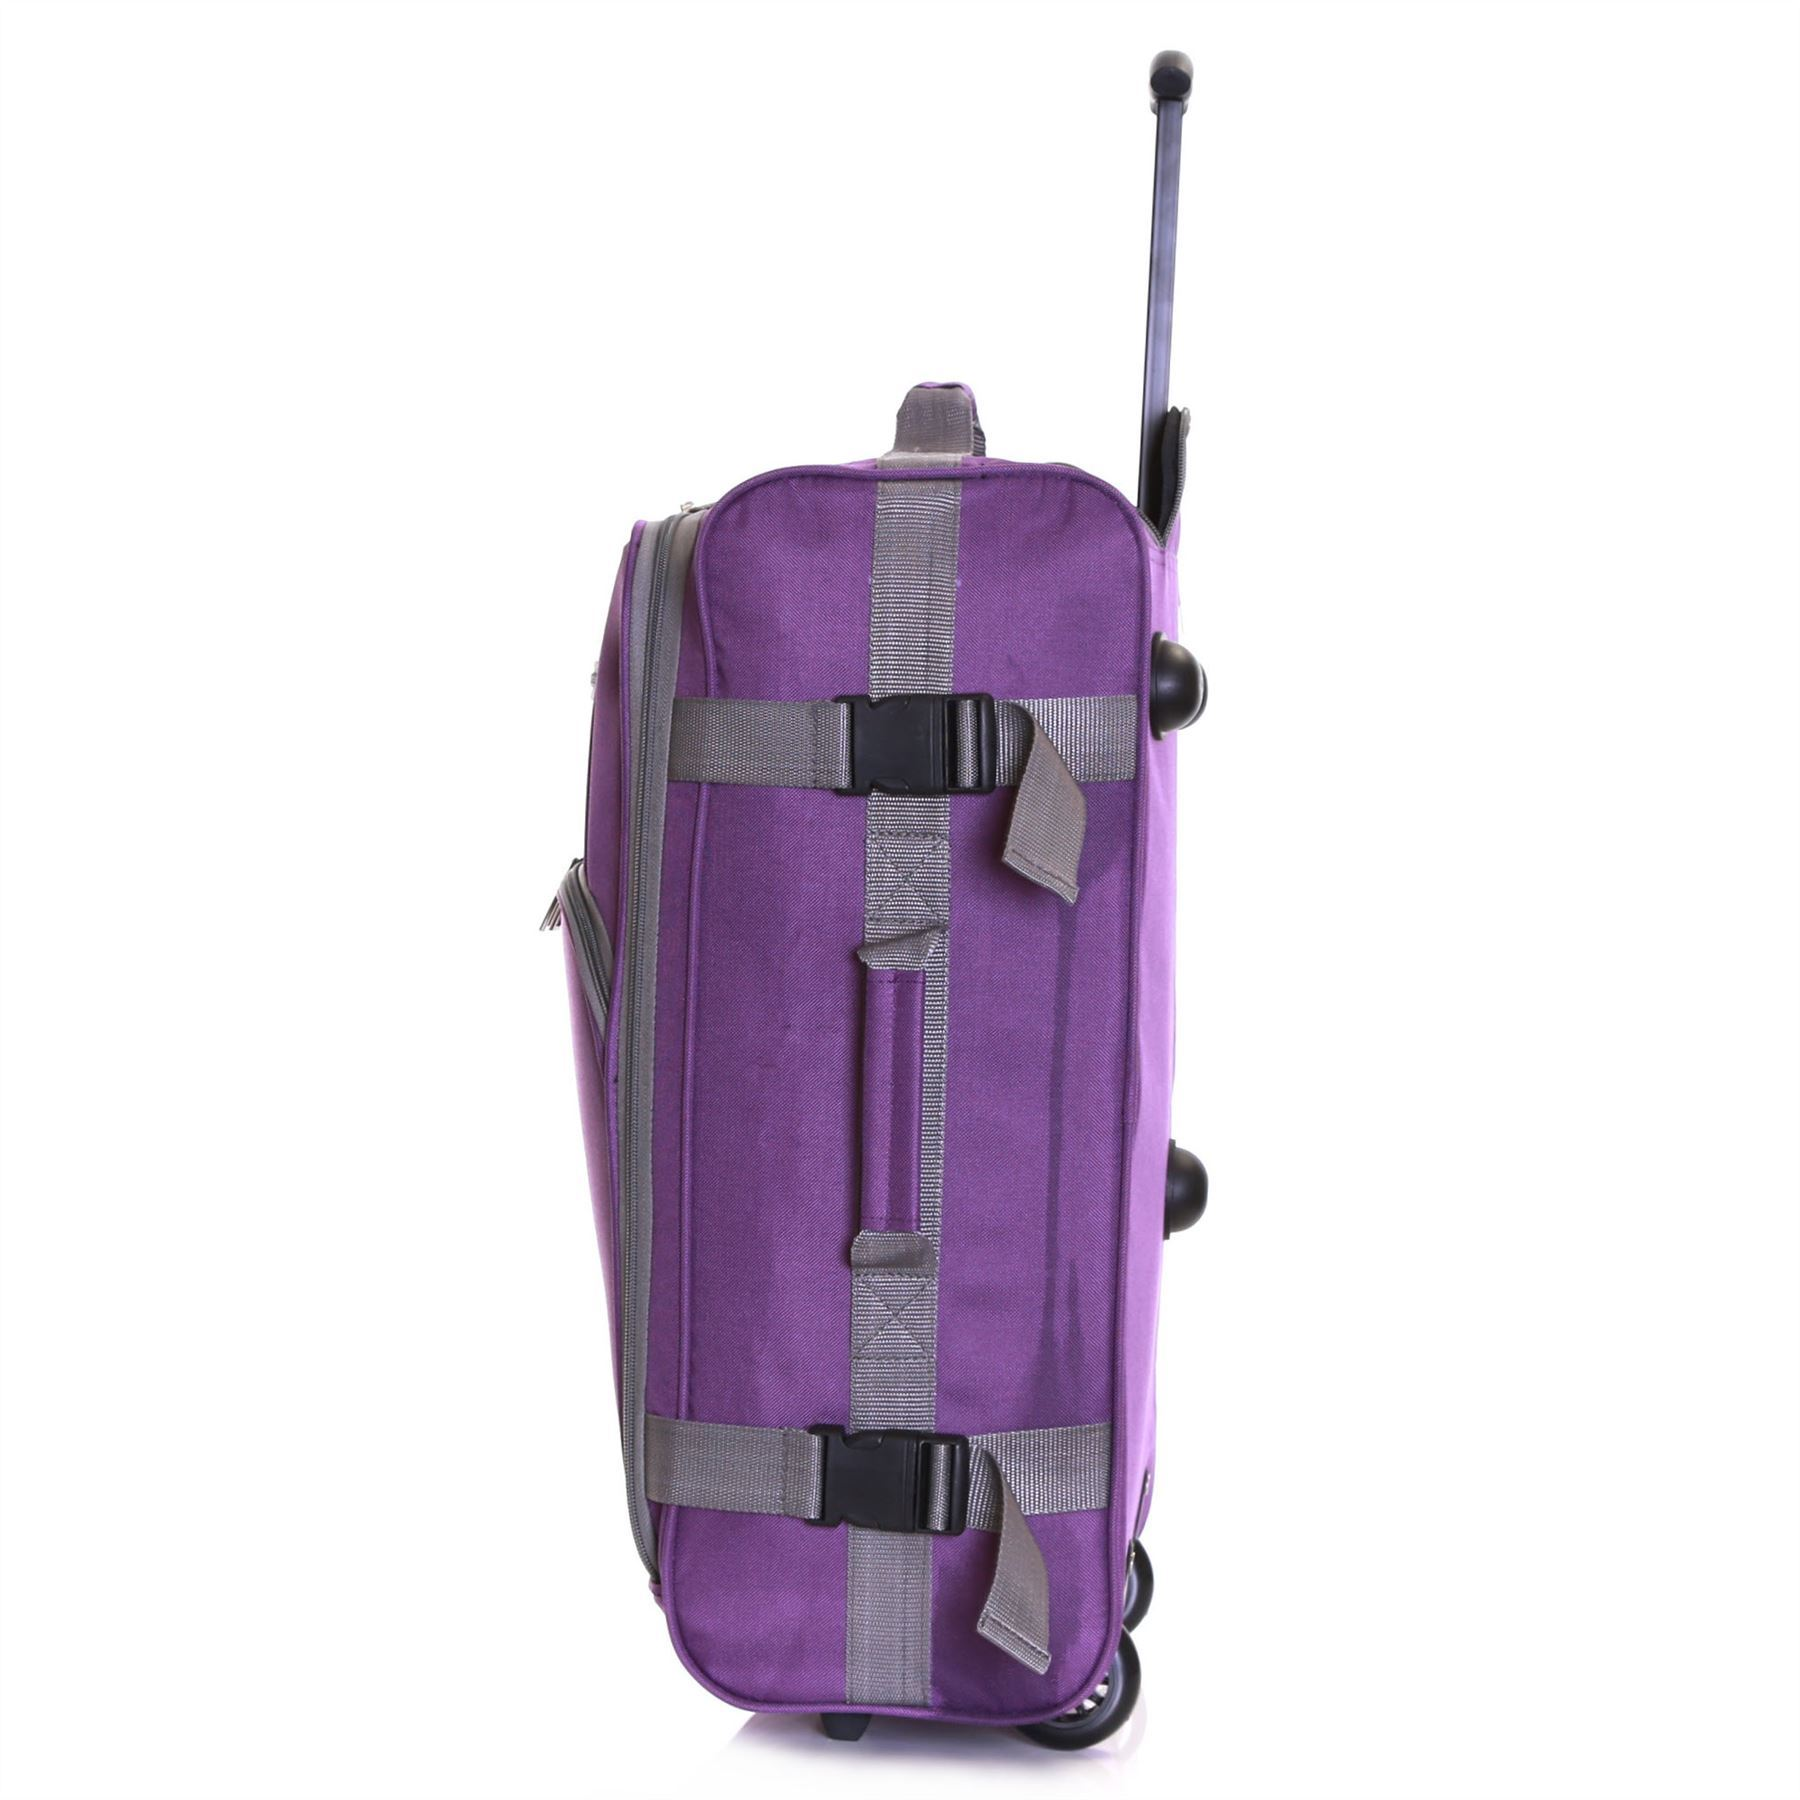 Ryanair-Easyjet-Set-of-2-Cabin-Approved-Hand-Trolley-Suitcases-Luggage-Case-Bags thumbnail 23